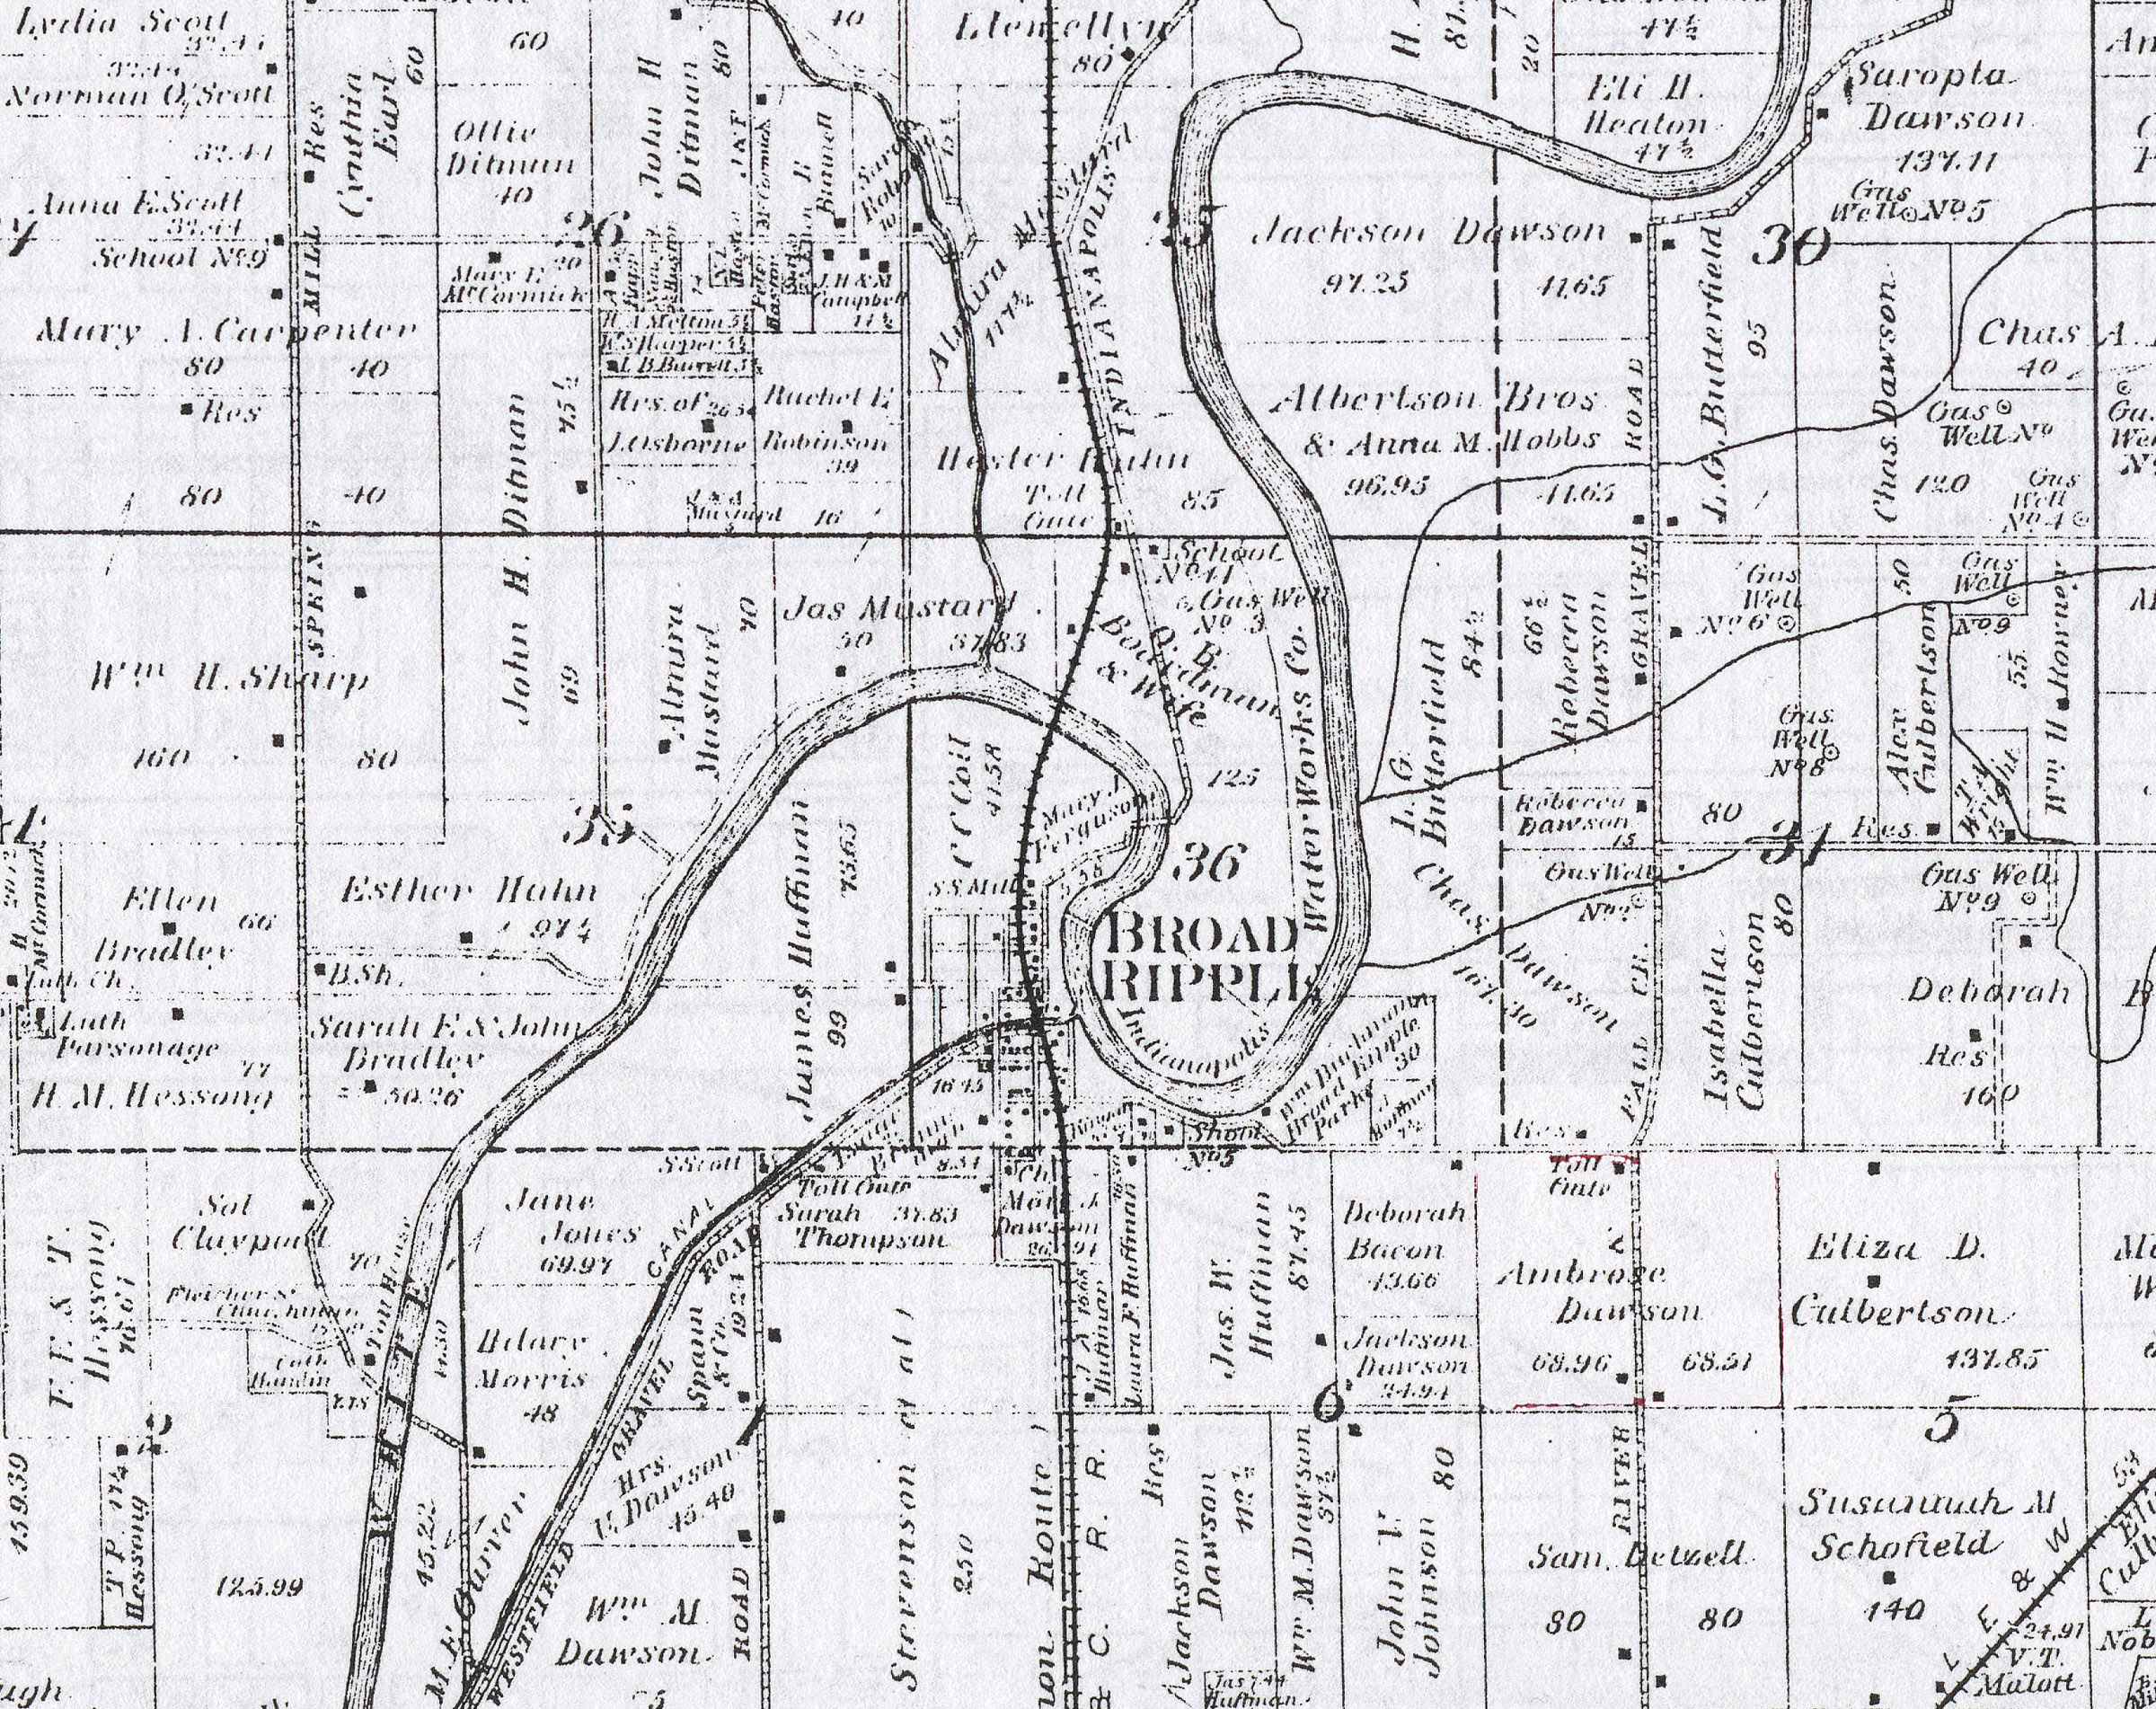 1889 Map of Washington Township - Historic Indianapolis ... Indianapolis Township Map on indianapolis school map, indianapolis cities map, indianapolis country map, indianapolis indians map, indianapolis ward map, indianapolis ohio map, indianapolis acres map, indianapolis water map, indianapolis education map, indiana government center north map, indianapolis districts, indianapolis zoning map, indianapolis zip code map, indianapolis precinct map, indianapolis townships by zip code, indianapolis street numbers, indianapolis construction map, indianapolis culture, indianapolis stadium map, indianapolis county map,